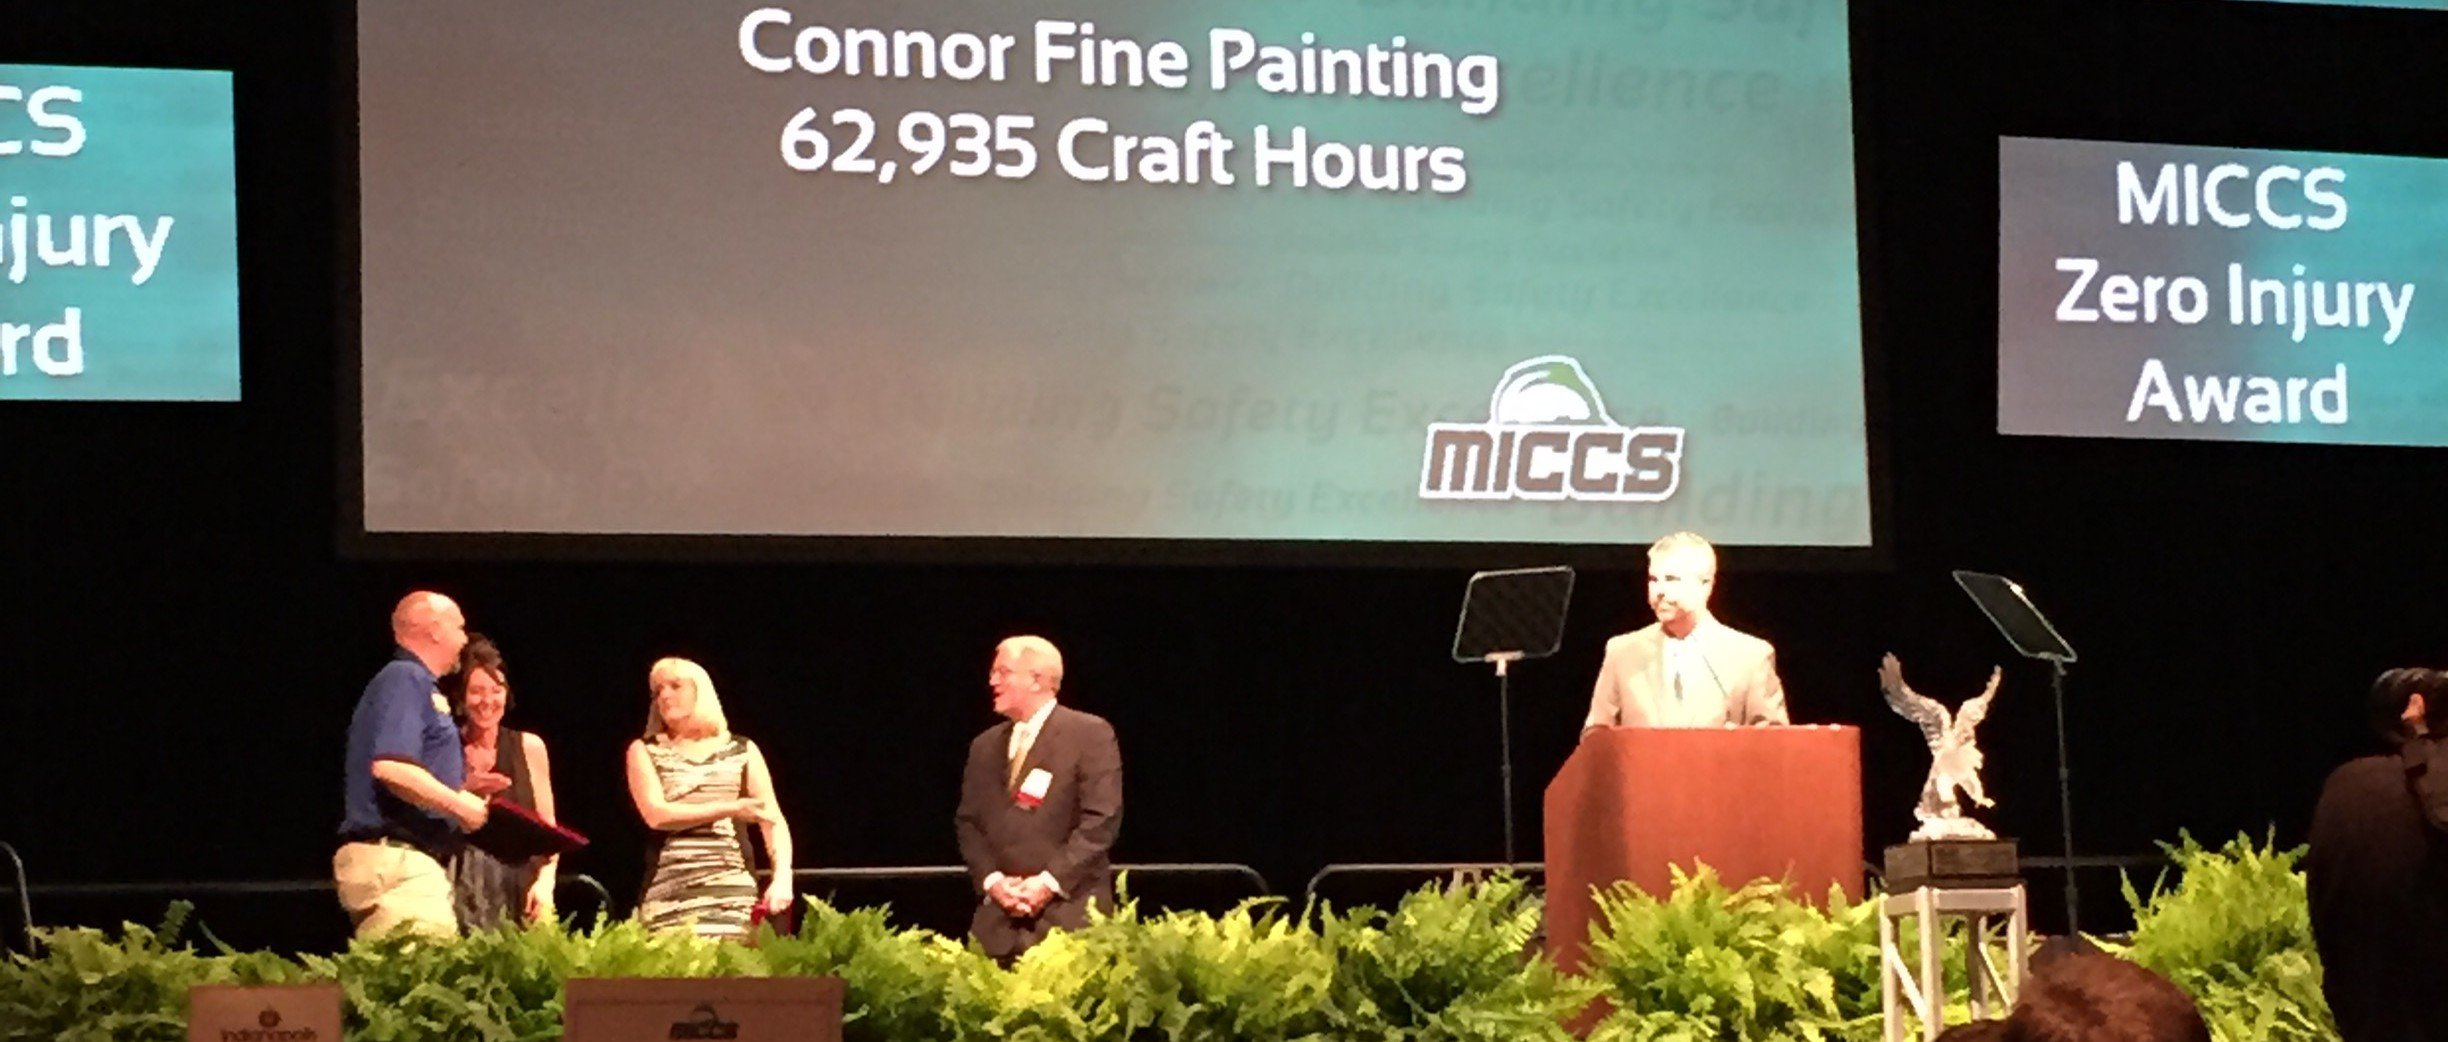 <h2>Connor Wins MICCS Zero Injury Award</h2> <p>Connor Fine Painting is the only MICCS Certified Zero Injury commercial painting contractor in greater Indianapolis.</p>